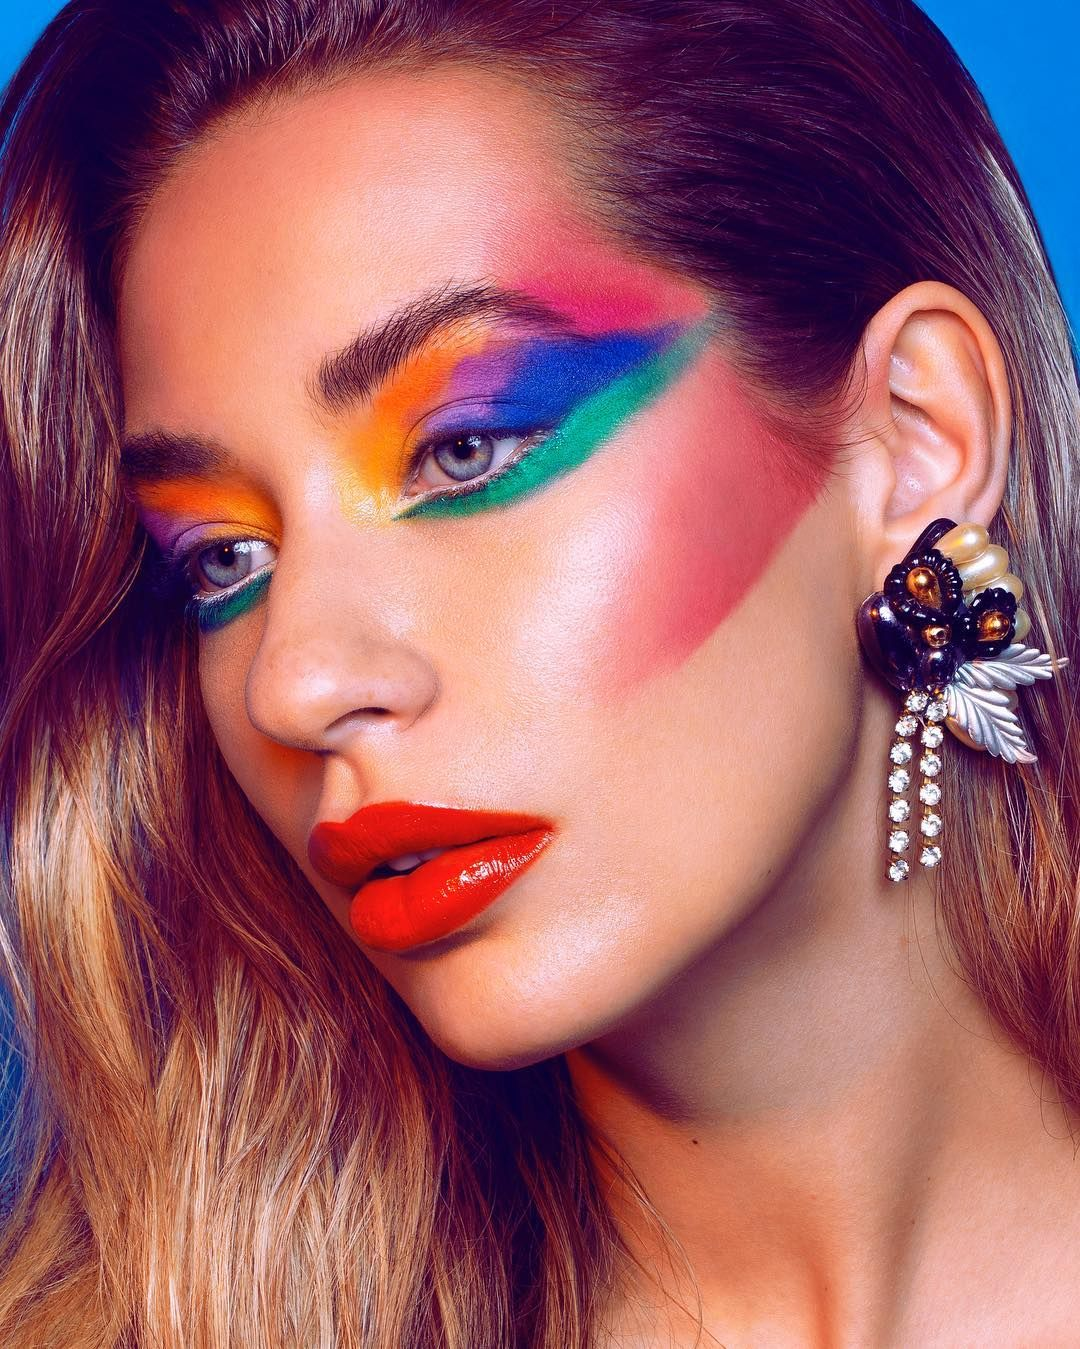 Back The 80 S Vibes Makeup Artist Tanyaguccionemua With This